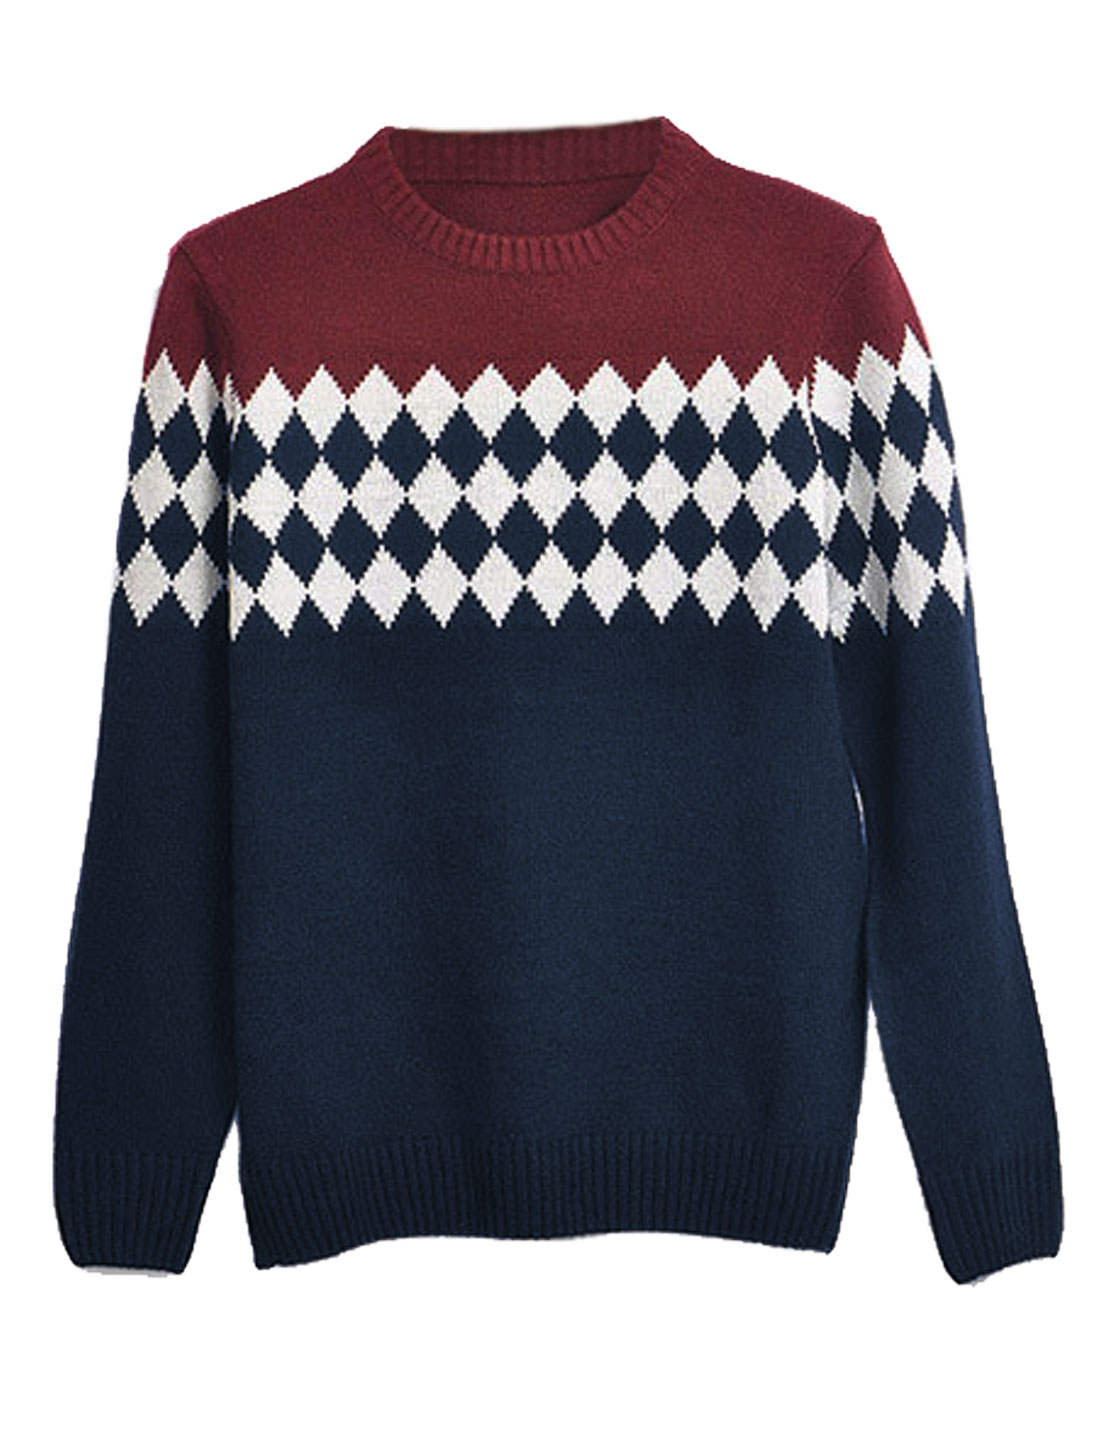 Men Leisure Ribbed Trim Contrast Color Argyle Print Sweater Navy Blue M